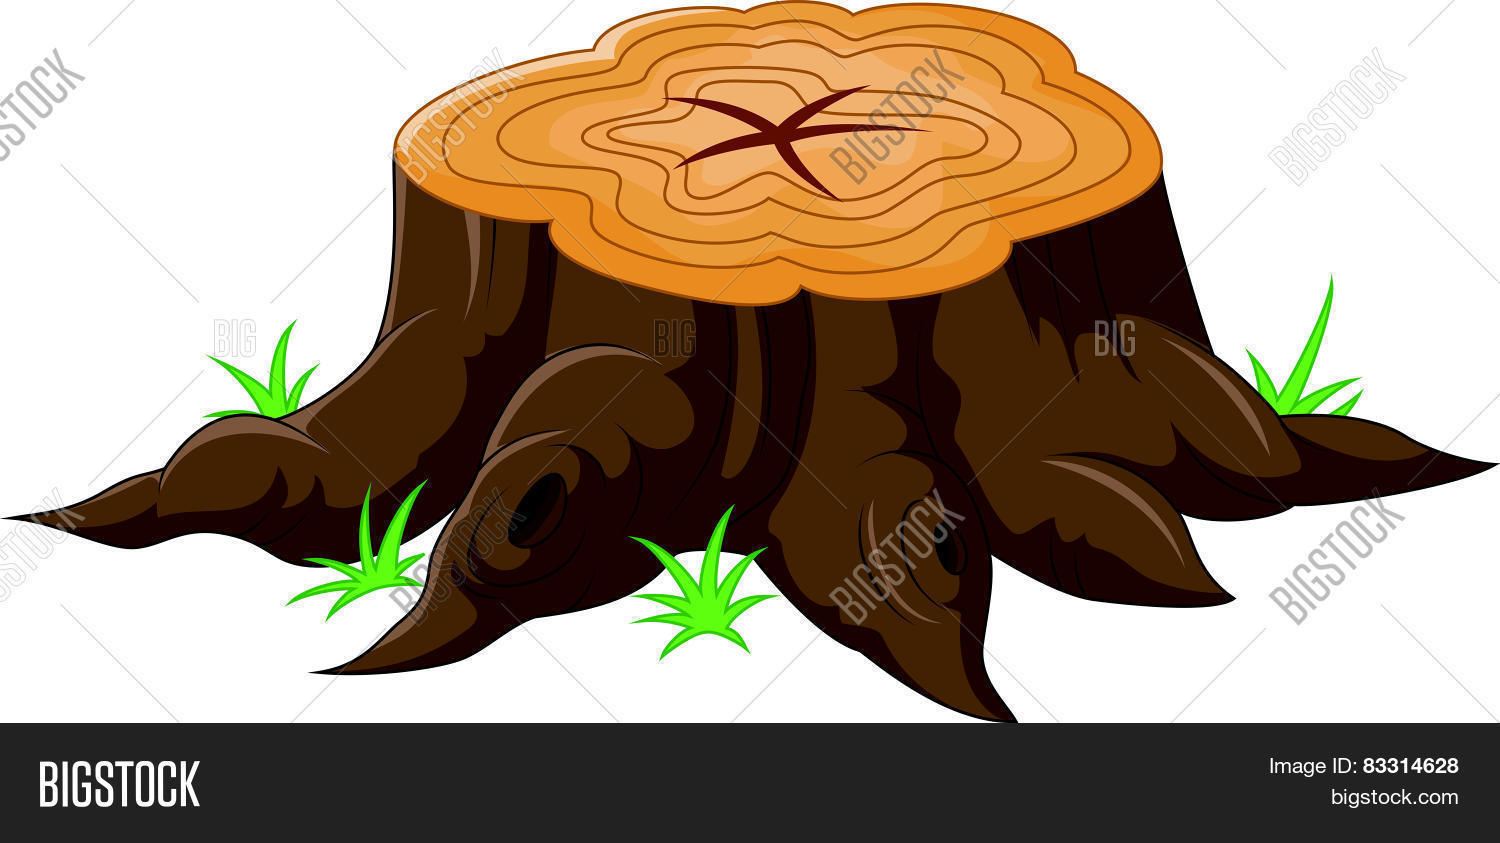 Cartoon Tree Stump Vector Photo Free Trial Bigstock Old tree stump 3d model cgtrader. cartoon tree stump vector photo free